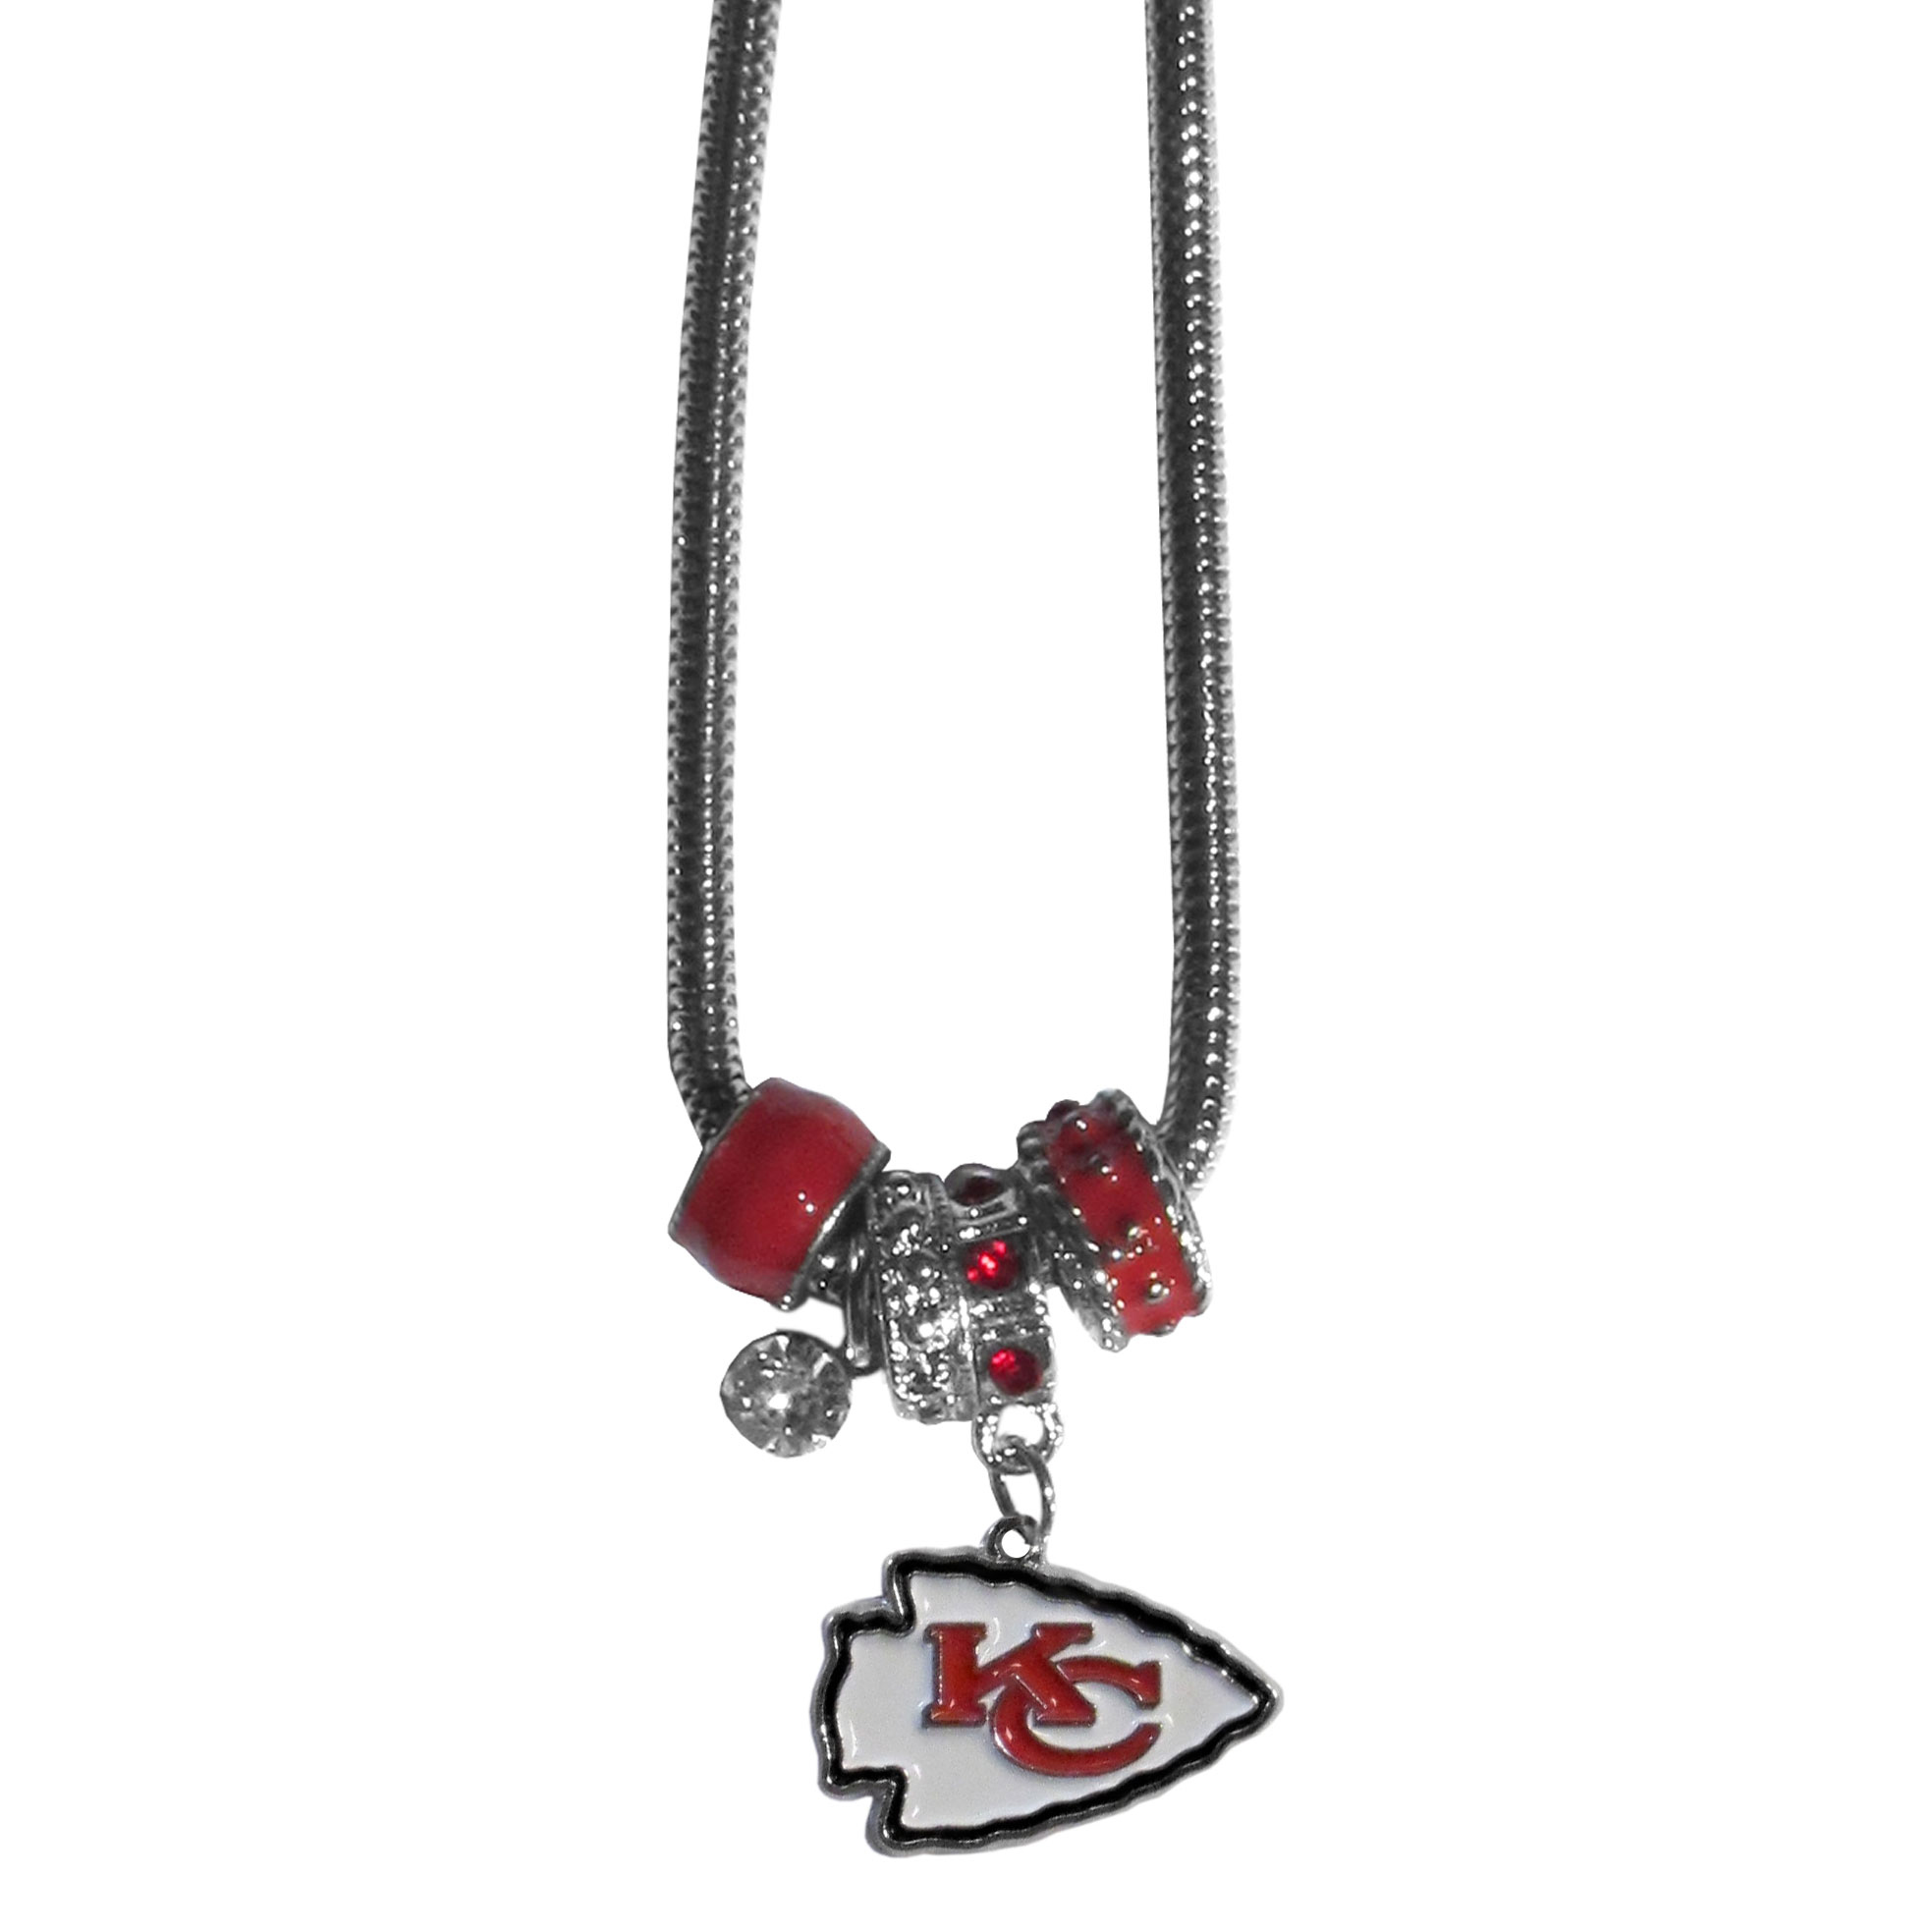 Kansas City Chiefs Euro Bead Necklace - We have combined the wildly popular Euro style beads with your favorite team to create our Kansas City Chiefs bead necklace. The 18 inch snake chain features 4 Euro beads with enameled team colors and rhinestone accents with a high polish, nickel free charm and rhinestone charm. Perfect way to show off your team pride.